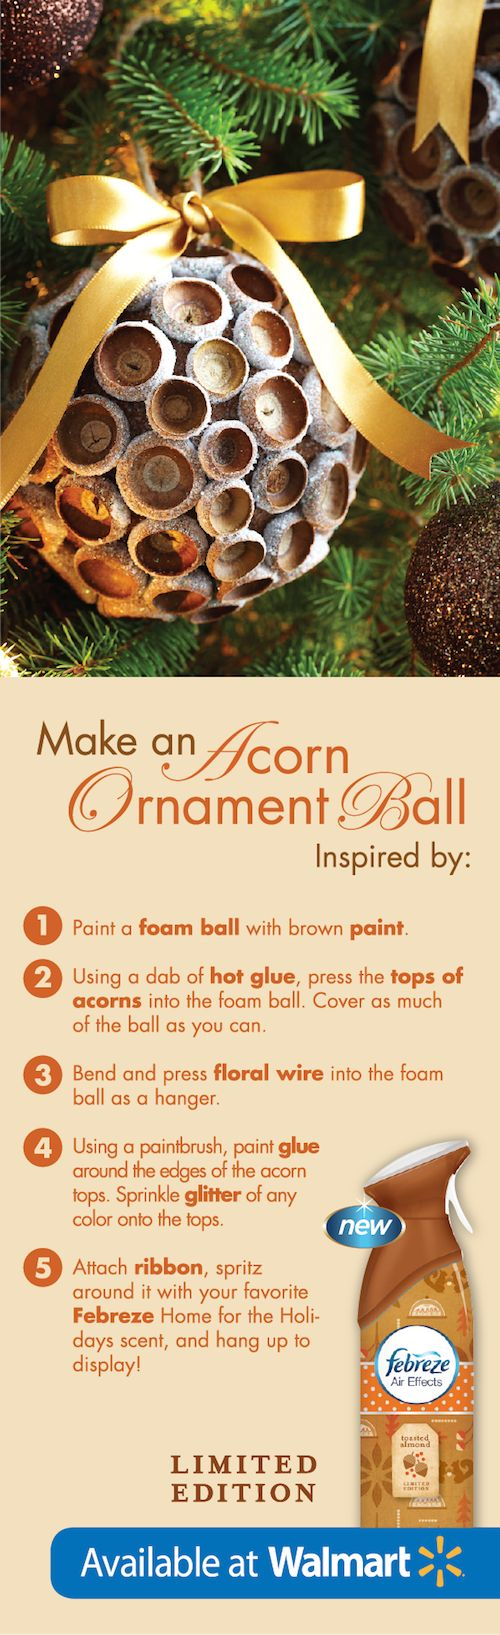 These #DIY ornaments would look so elegant on any Christmas tree! #FebrezeHoliday